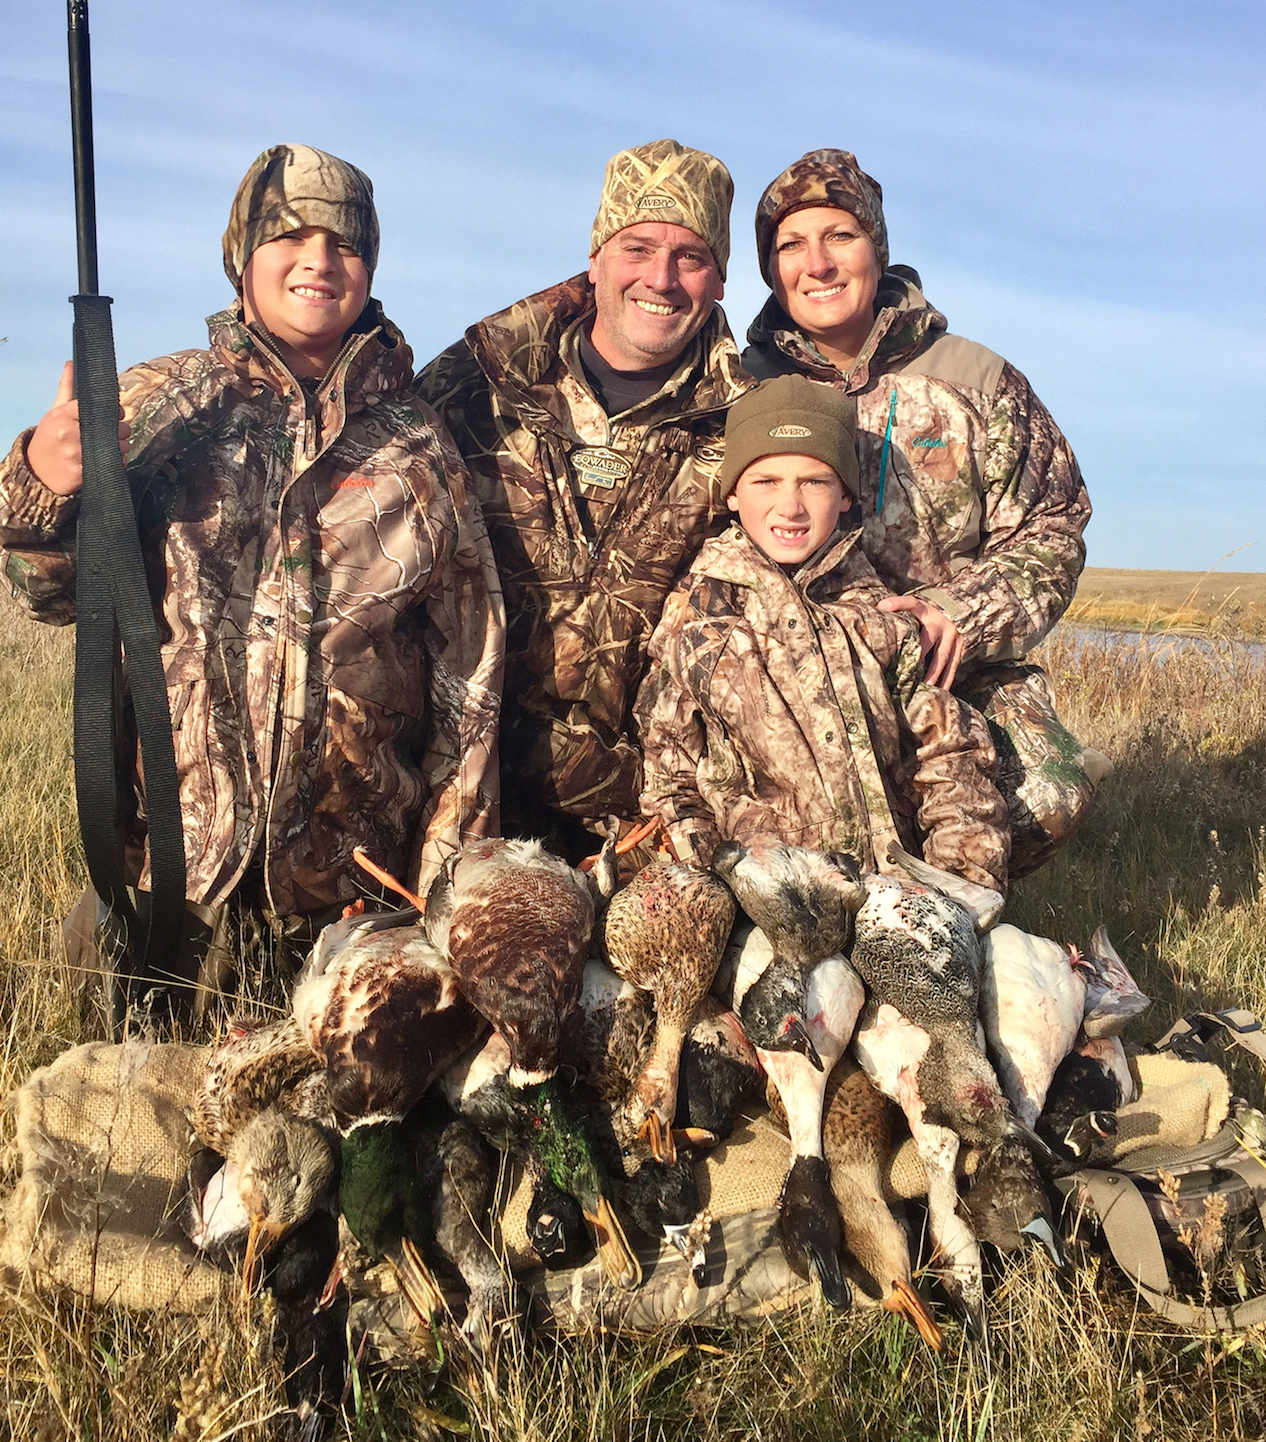 Start With Early Duck To Inspire Young Hunters